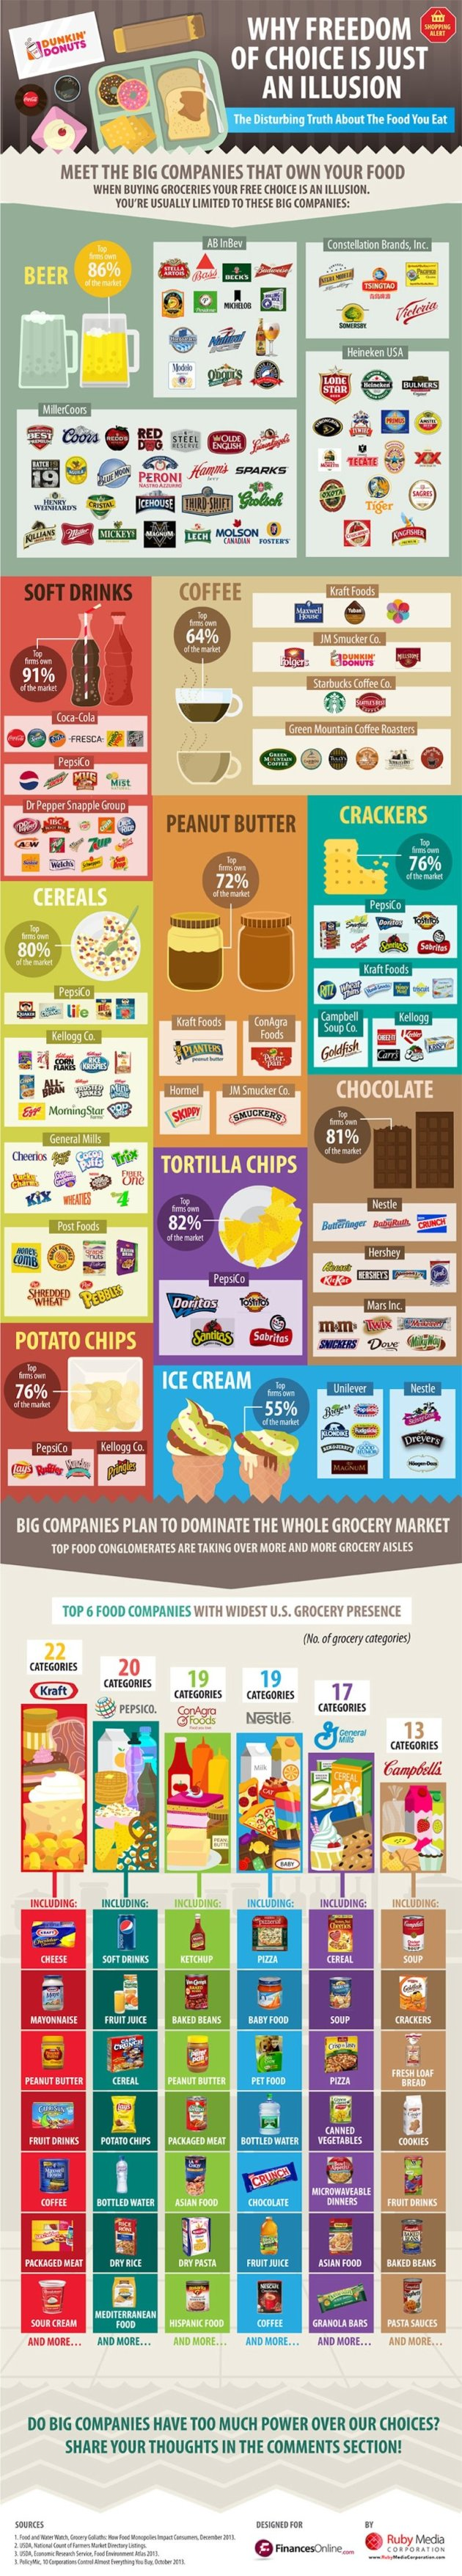 infographic-food-monopoly-2-1